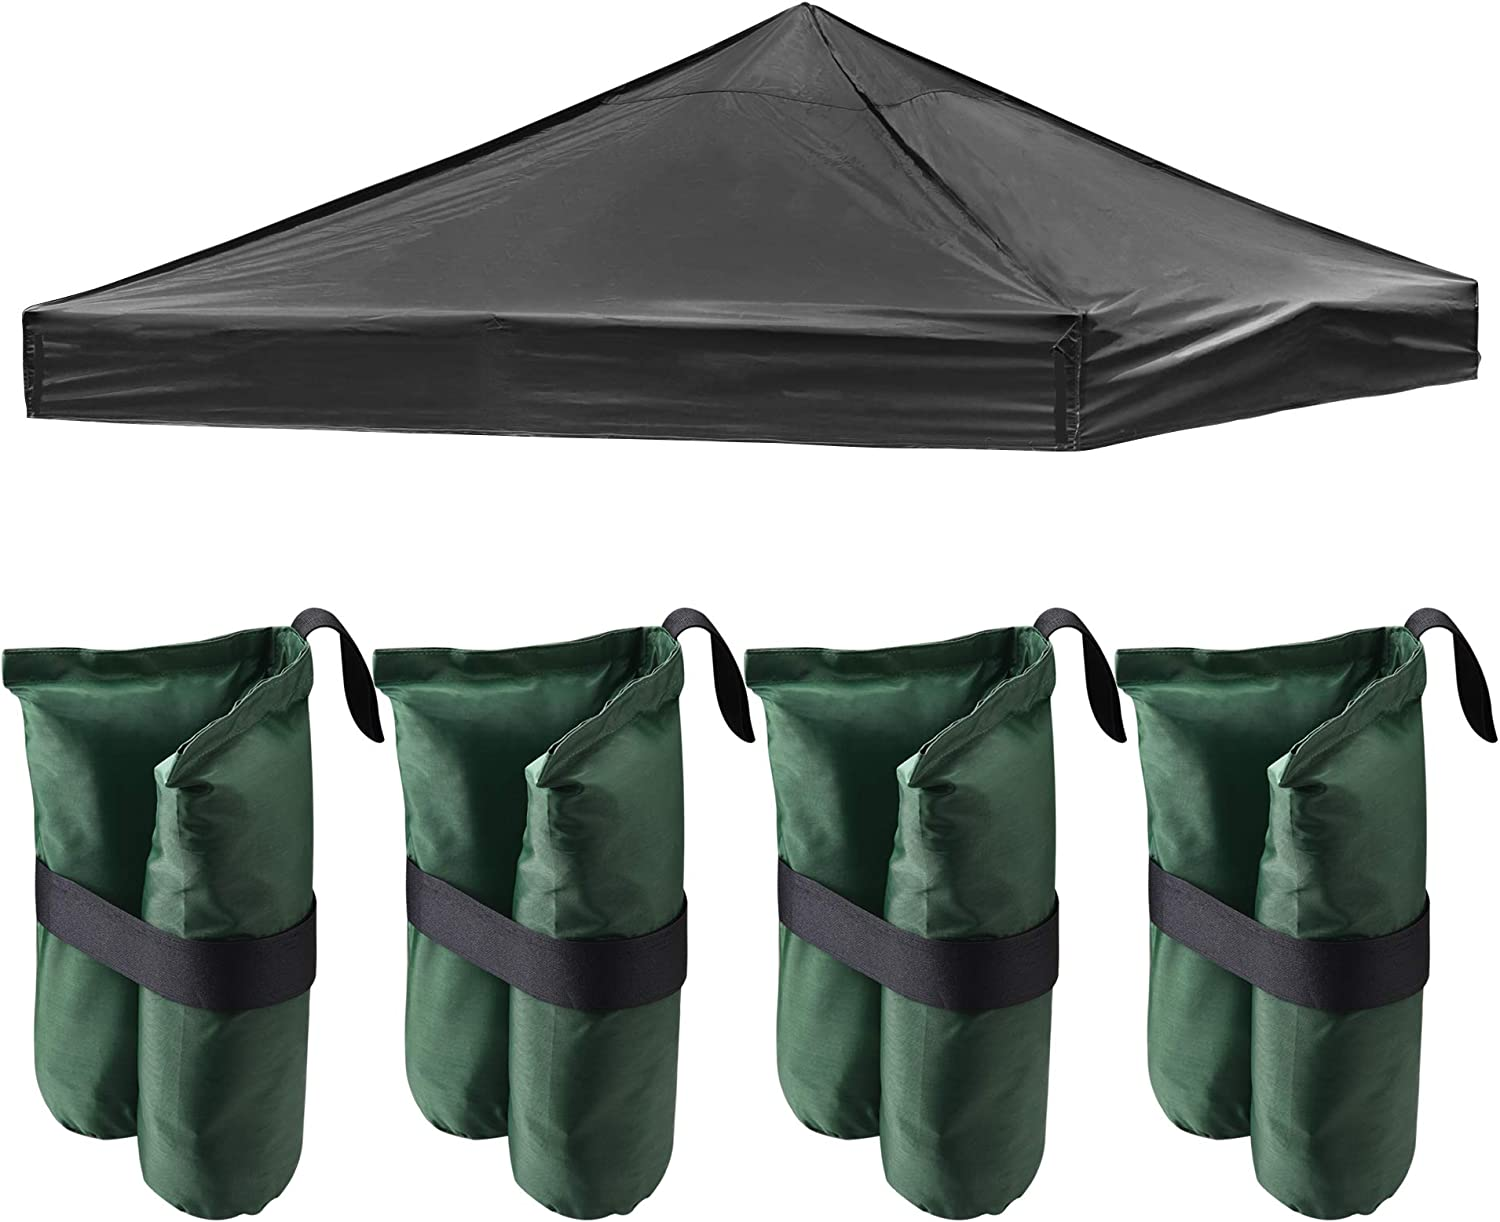 ReaseJoy 9.6x9.6 Ft Event overseas EZ Pop Up with Pack Top Canopy 4 Popular shop is the lowest price challenge Tent